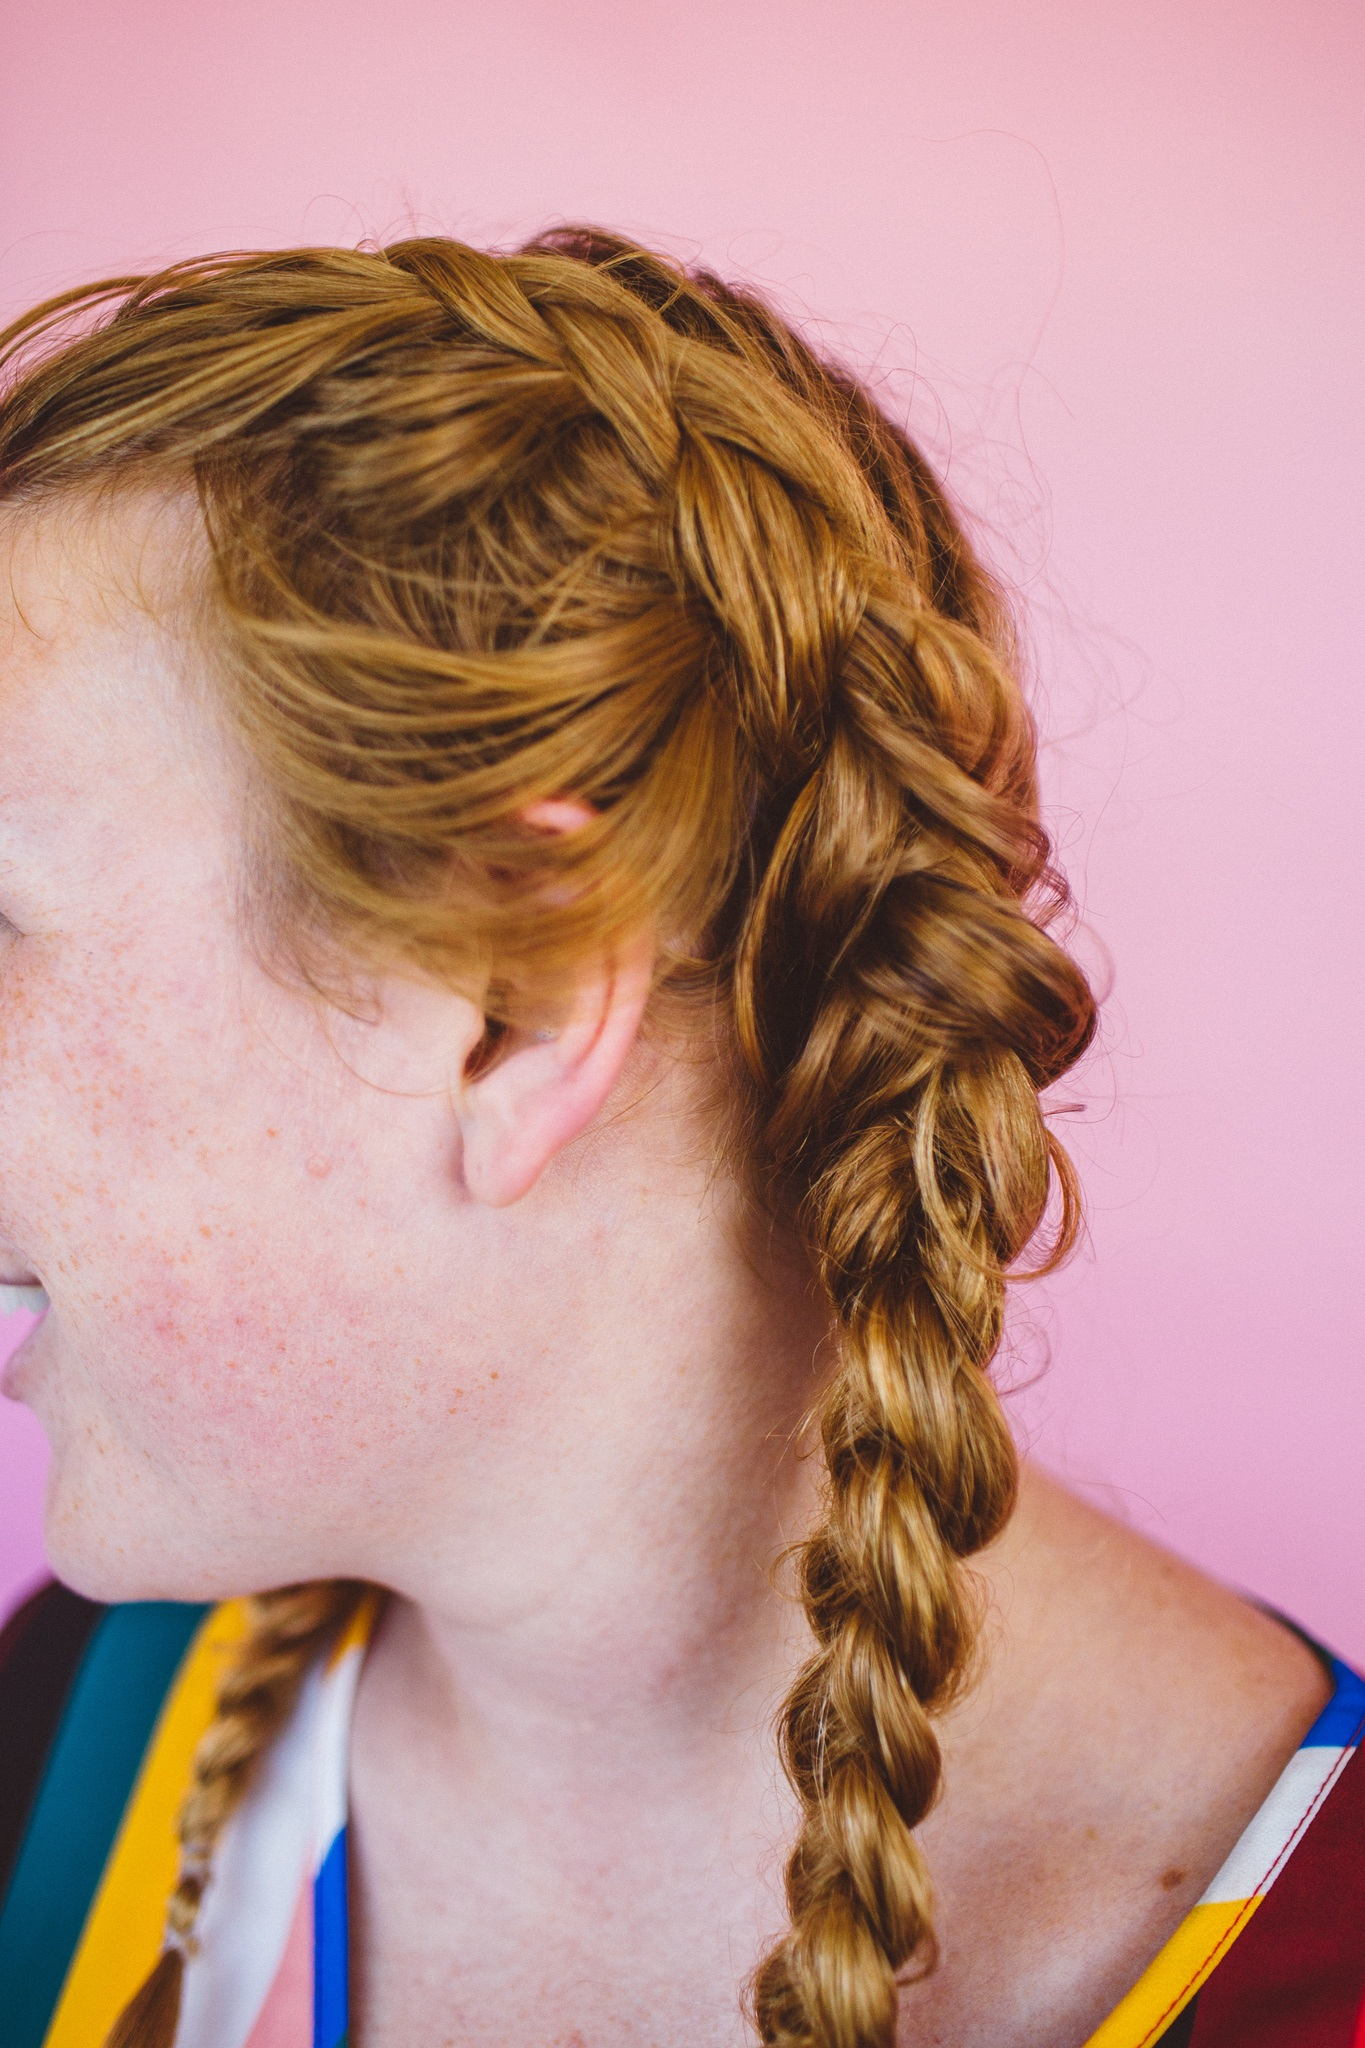 Pigtails for curls with no heat